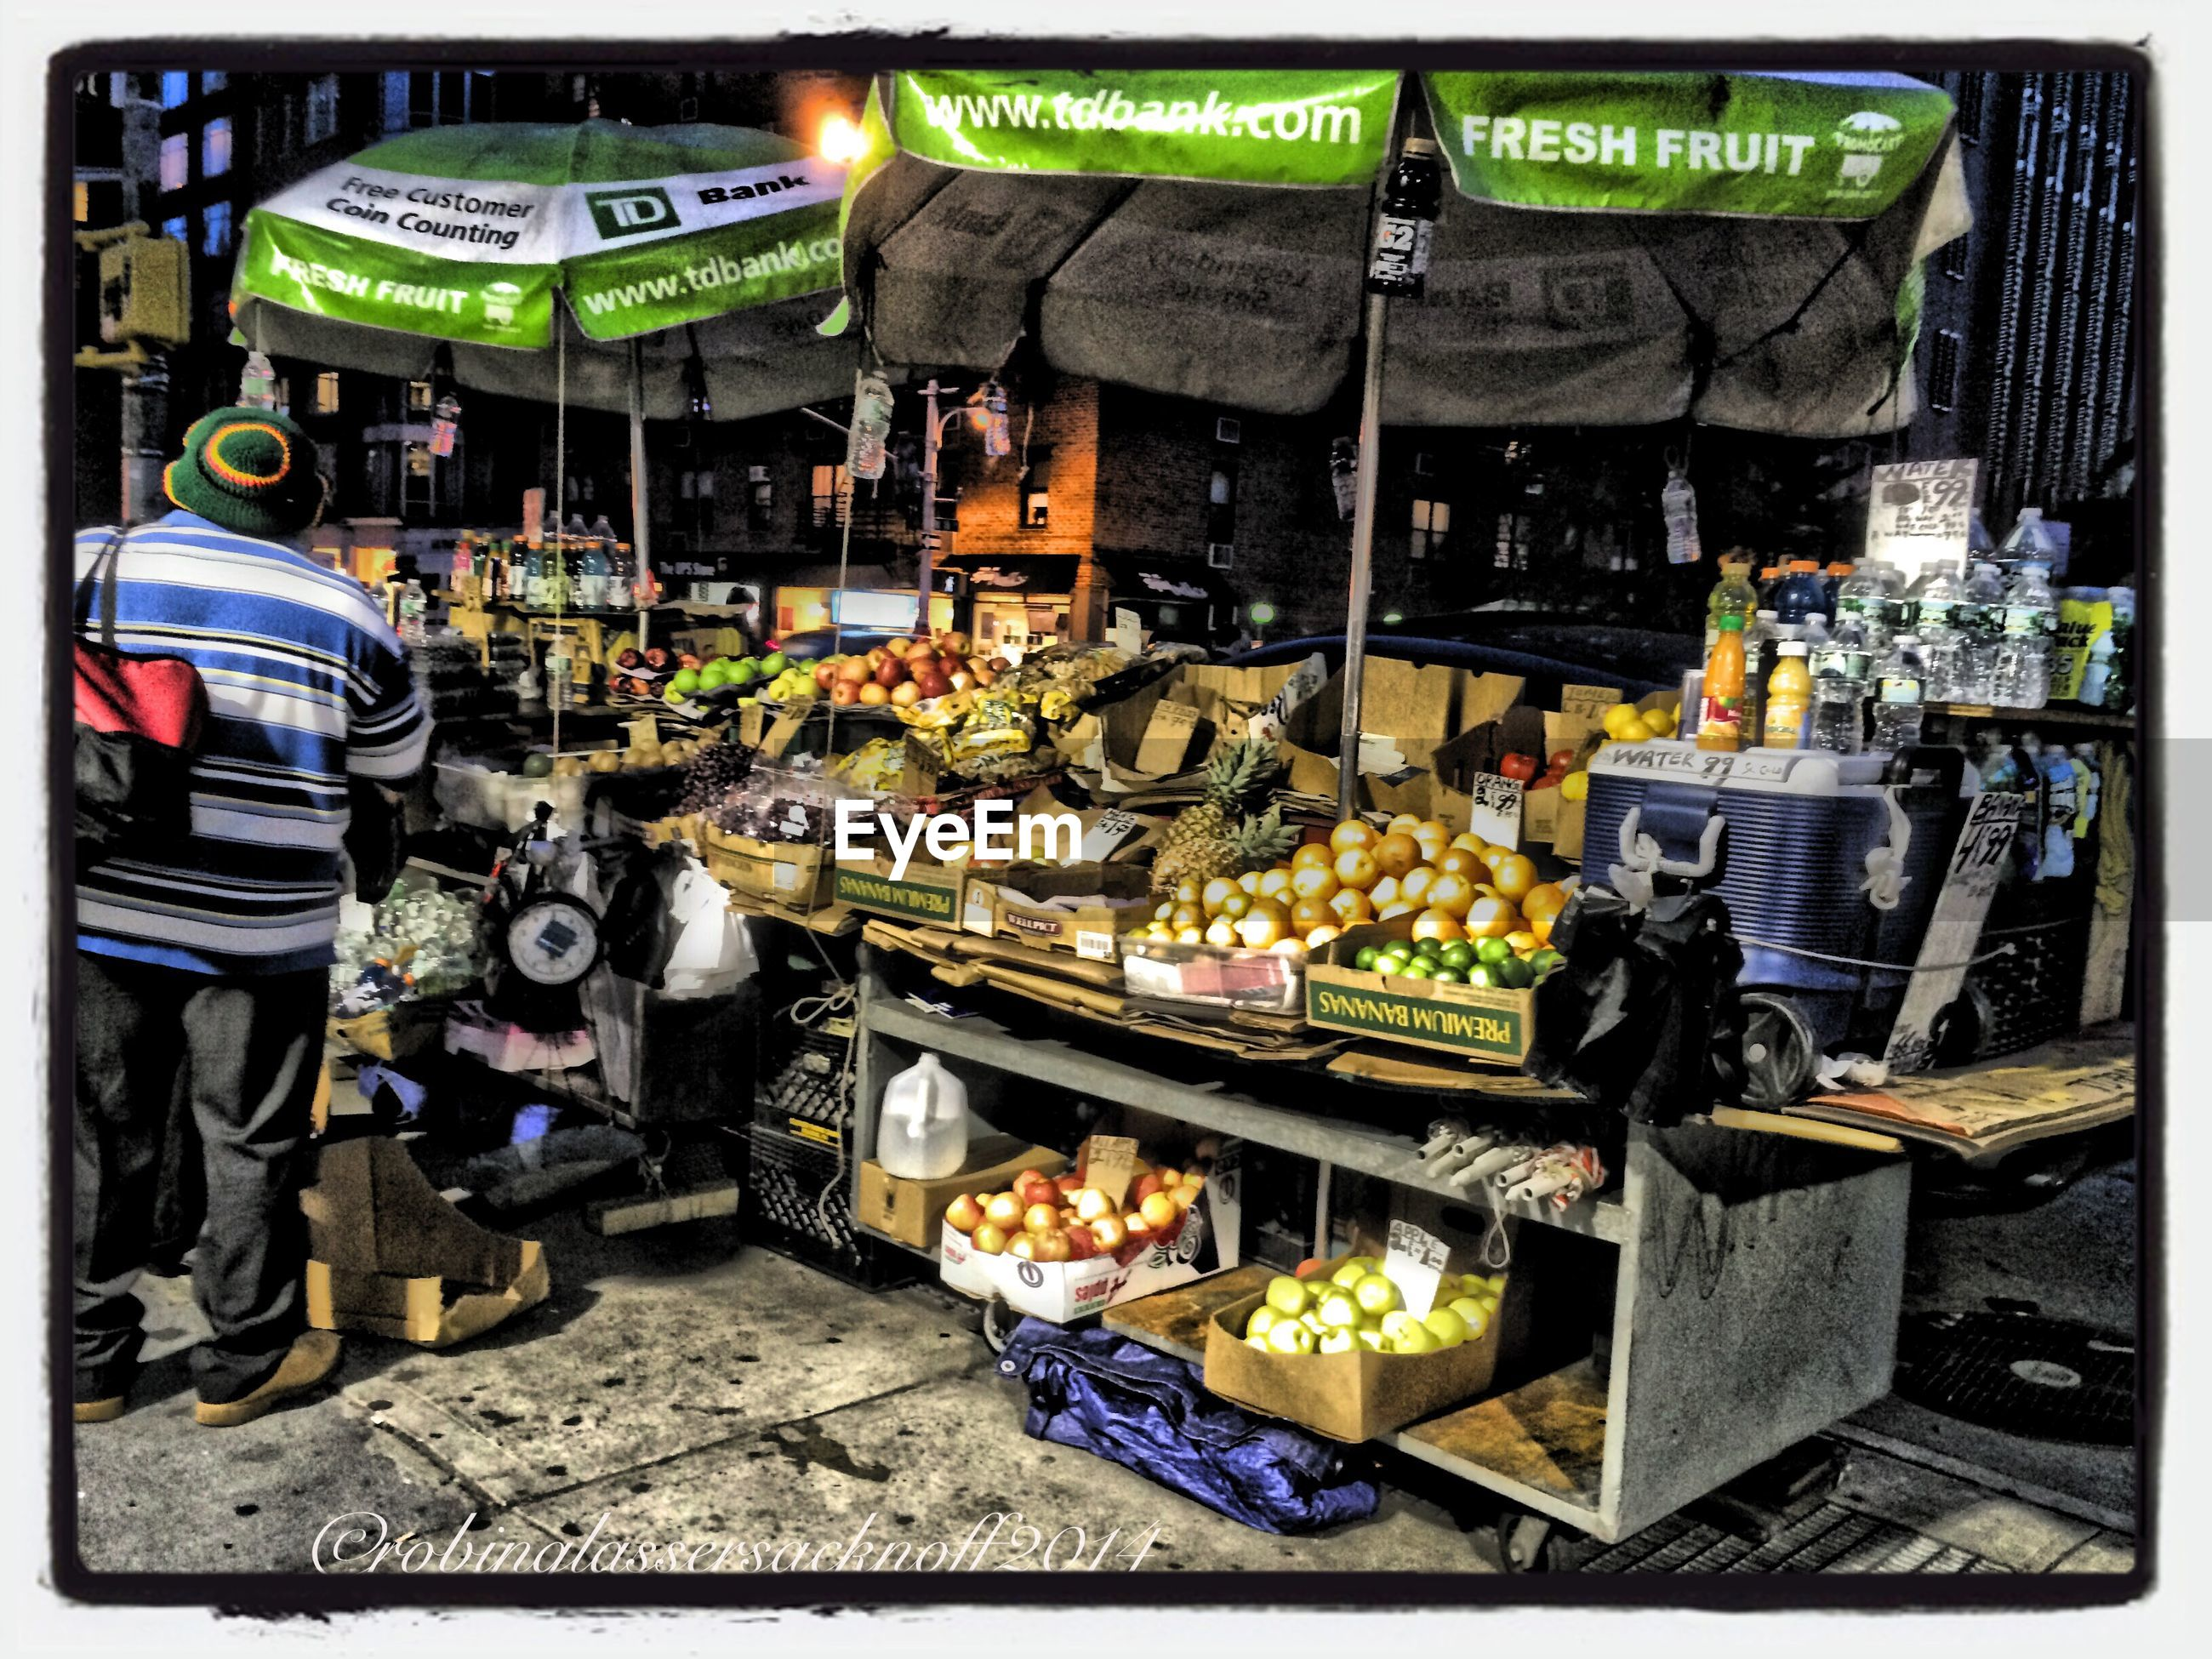 for sale, retail, large group of objects, market stall, abundance, market, variation, choice, transfer print, sale, display, arrangement, store, food, food and drink, price tag, shop, stack, small business, consumerism